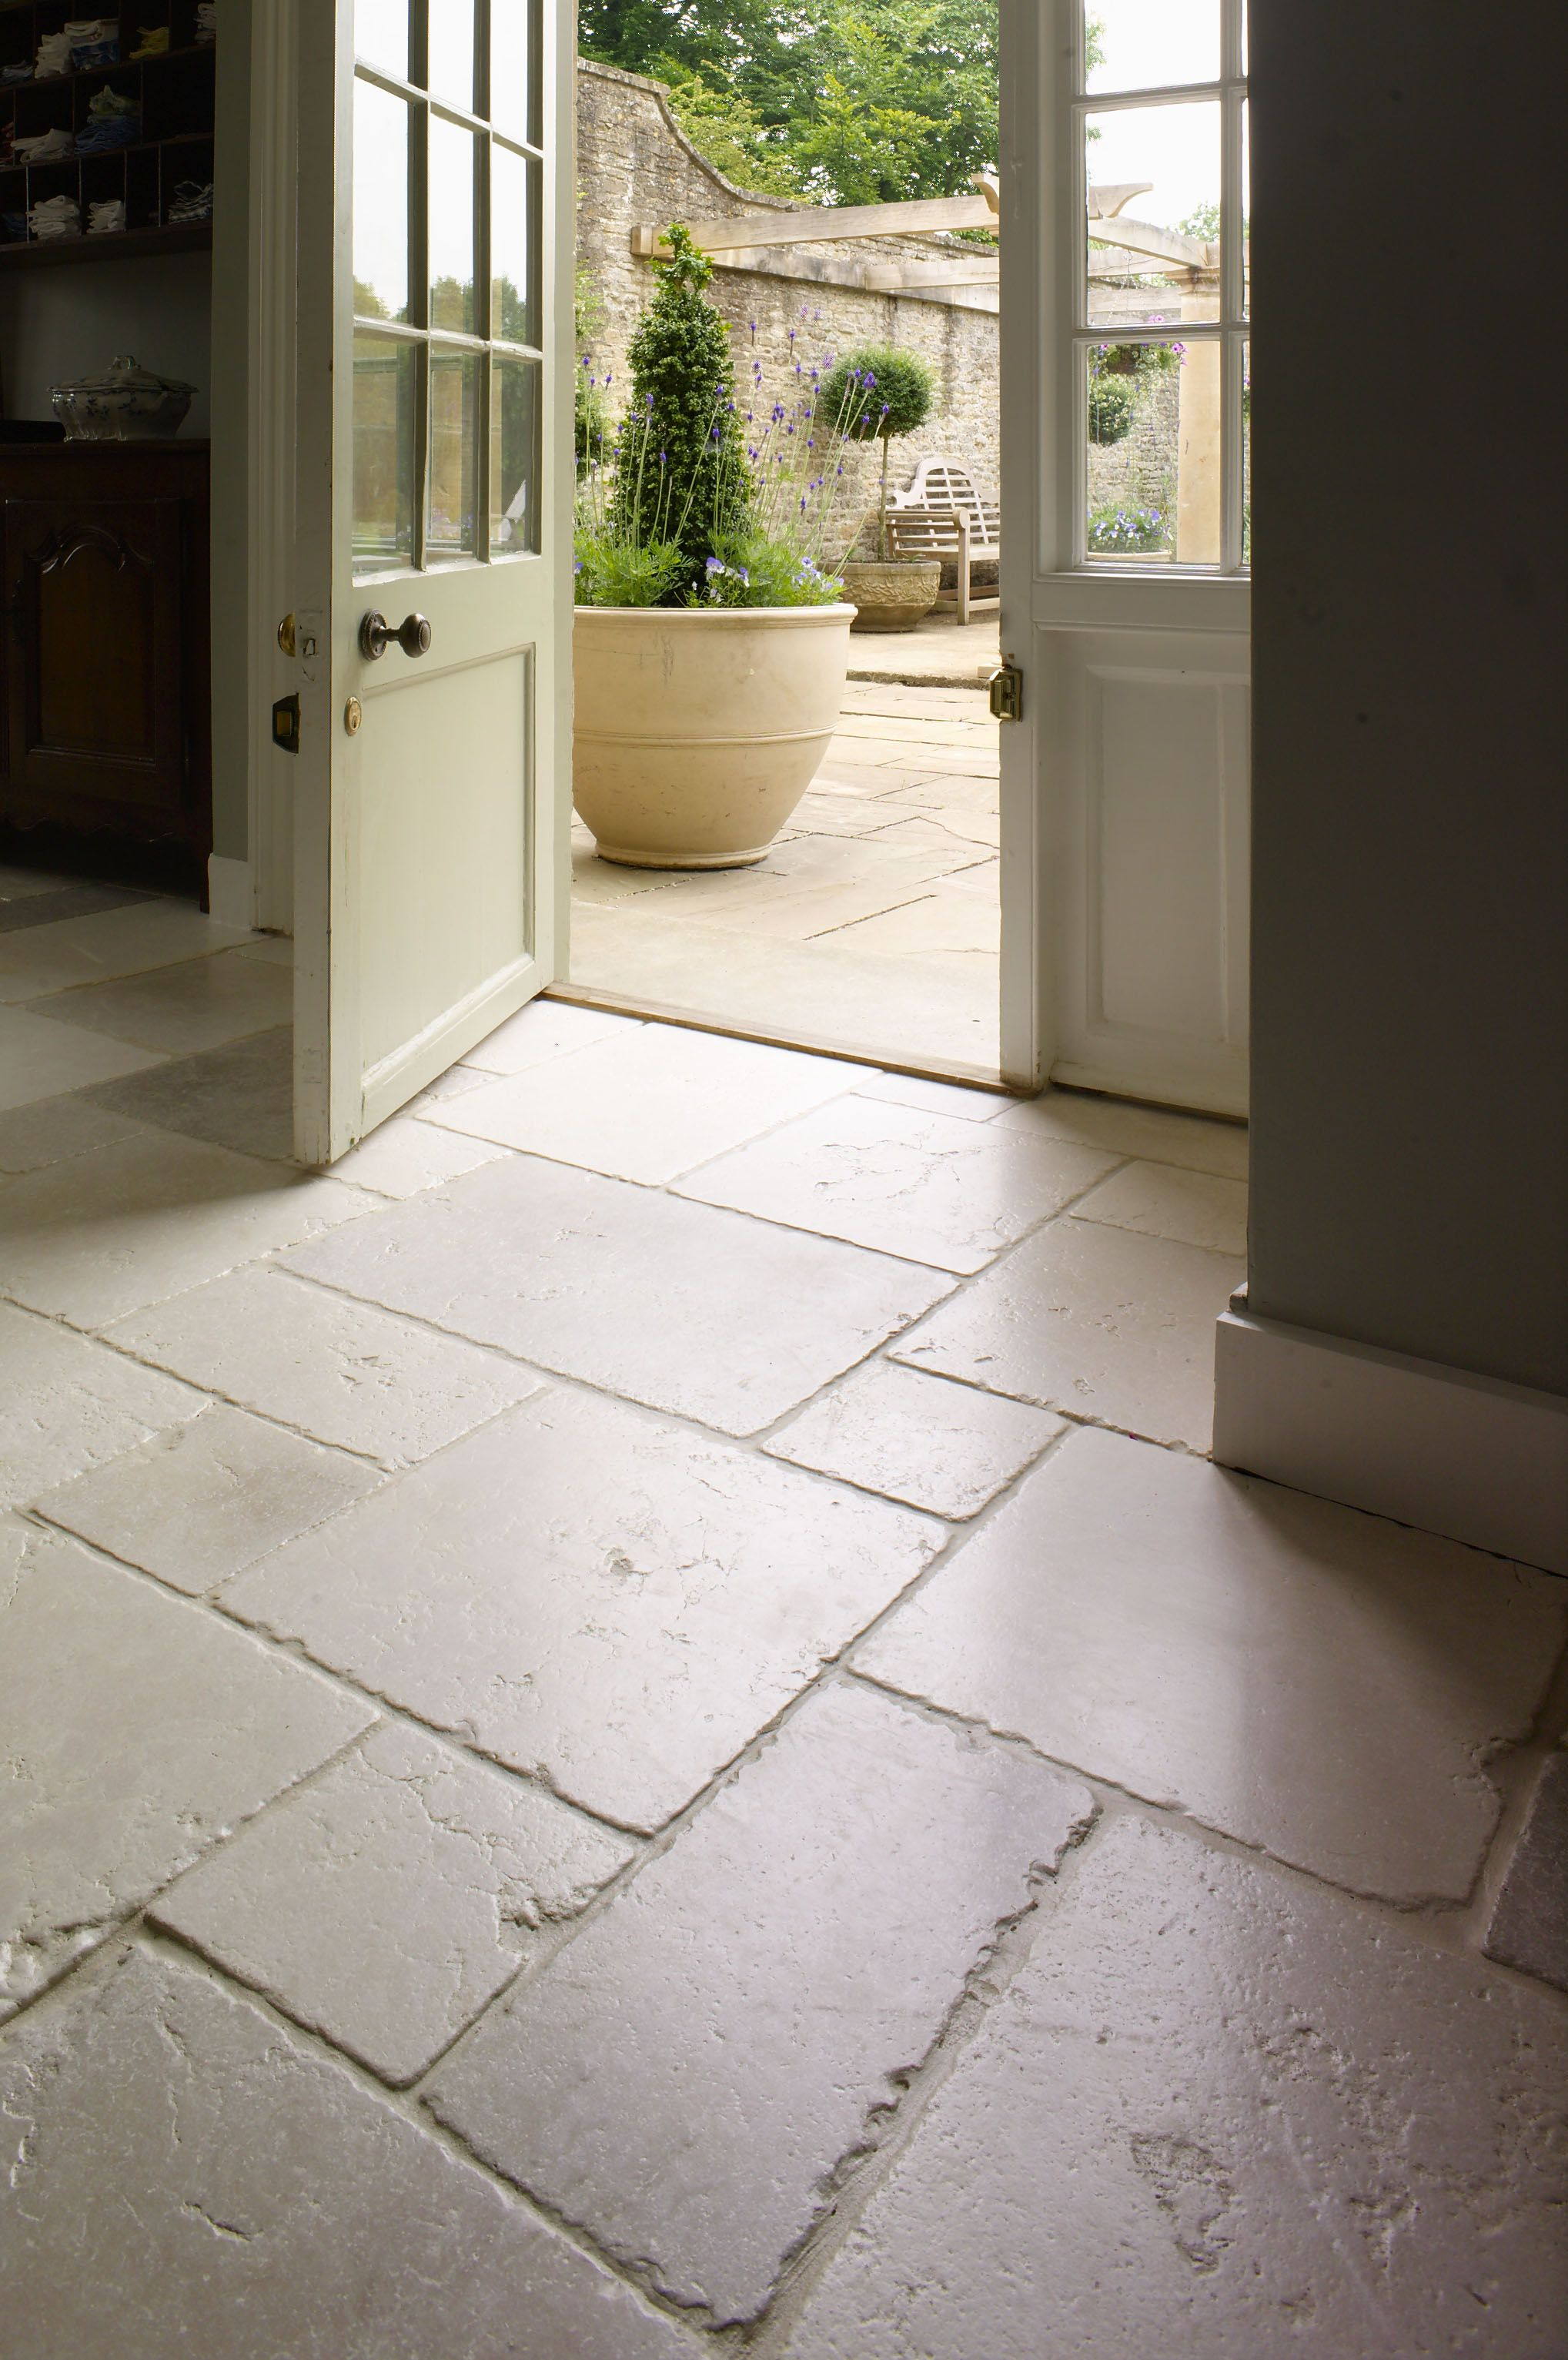 St arbois tumbled limestone beautifully aged a stylish and st arbois tumbled limestone floor a stylish and popular tumbled limestone with delicate tones of beige pale greys creams and the occasional blush pink dailygadgetfo Image collections